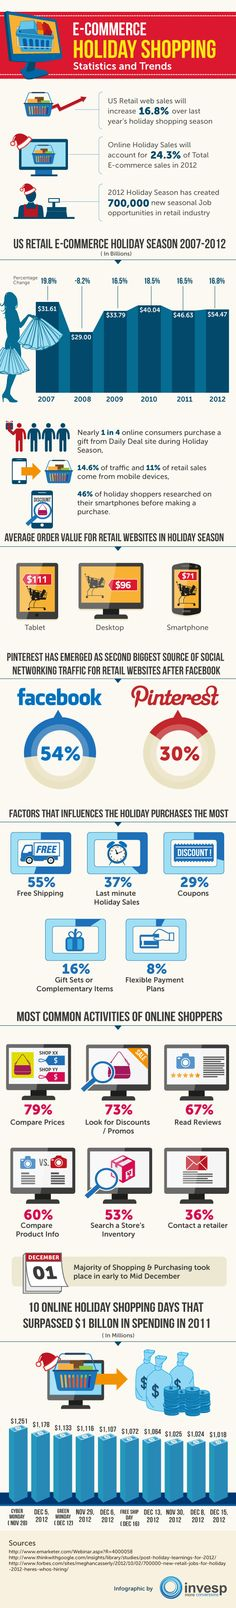 E-Commerce Holiday Shopping: Statistics and Trends [INFOGRAPHIC]